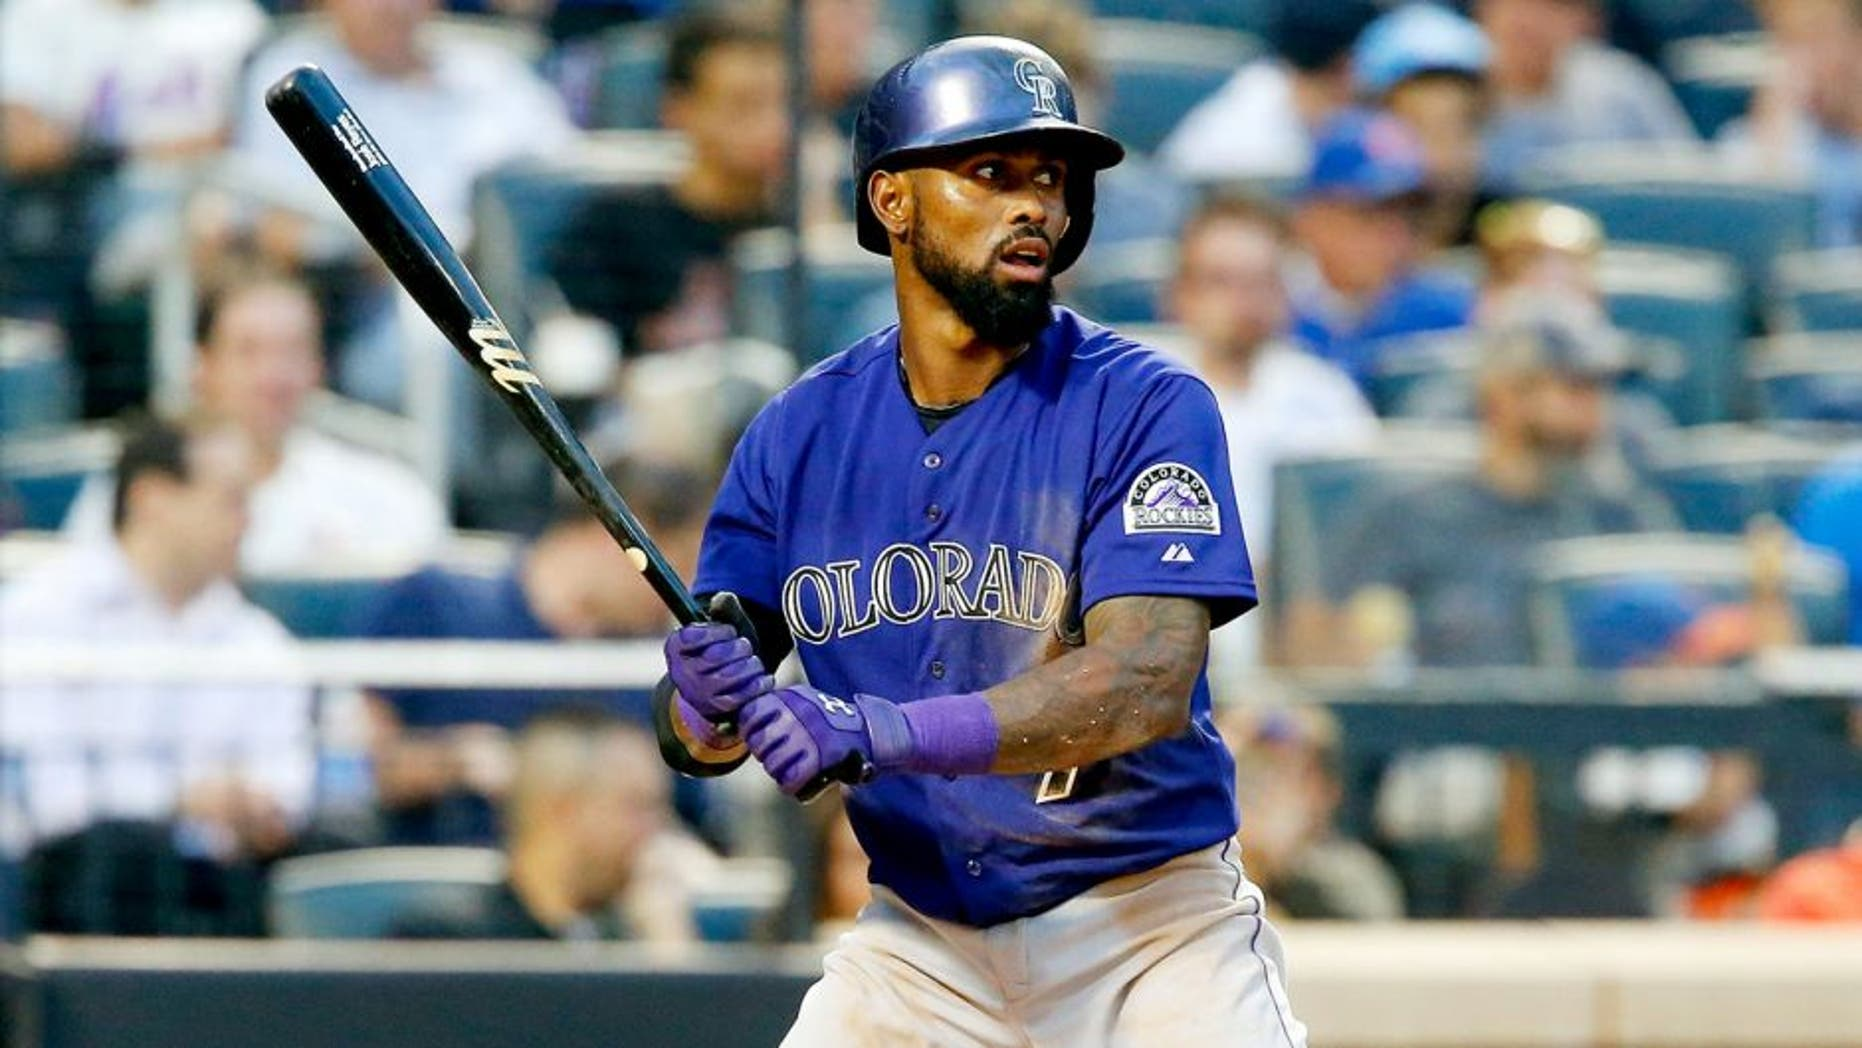 NEW YORK, NY - AUGUST 10: (NEW YORK DAILIES OUT) Jose Reyes #7 of the Colorado Rockies in action against the New York Mets at Citi Field on August 10, 2015 in the Flushing neighborhood of the Queens borough of New York City. The Mets defeated the Rockies 4-2. (Photo by Jim McIsaac/Getty Images)